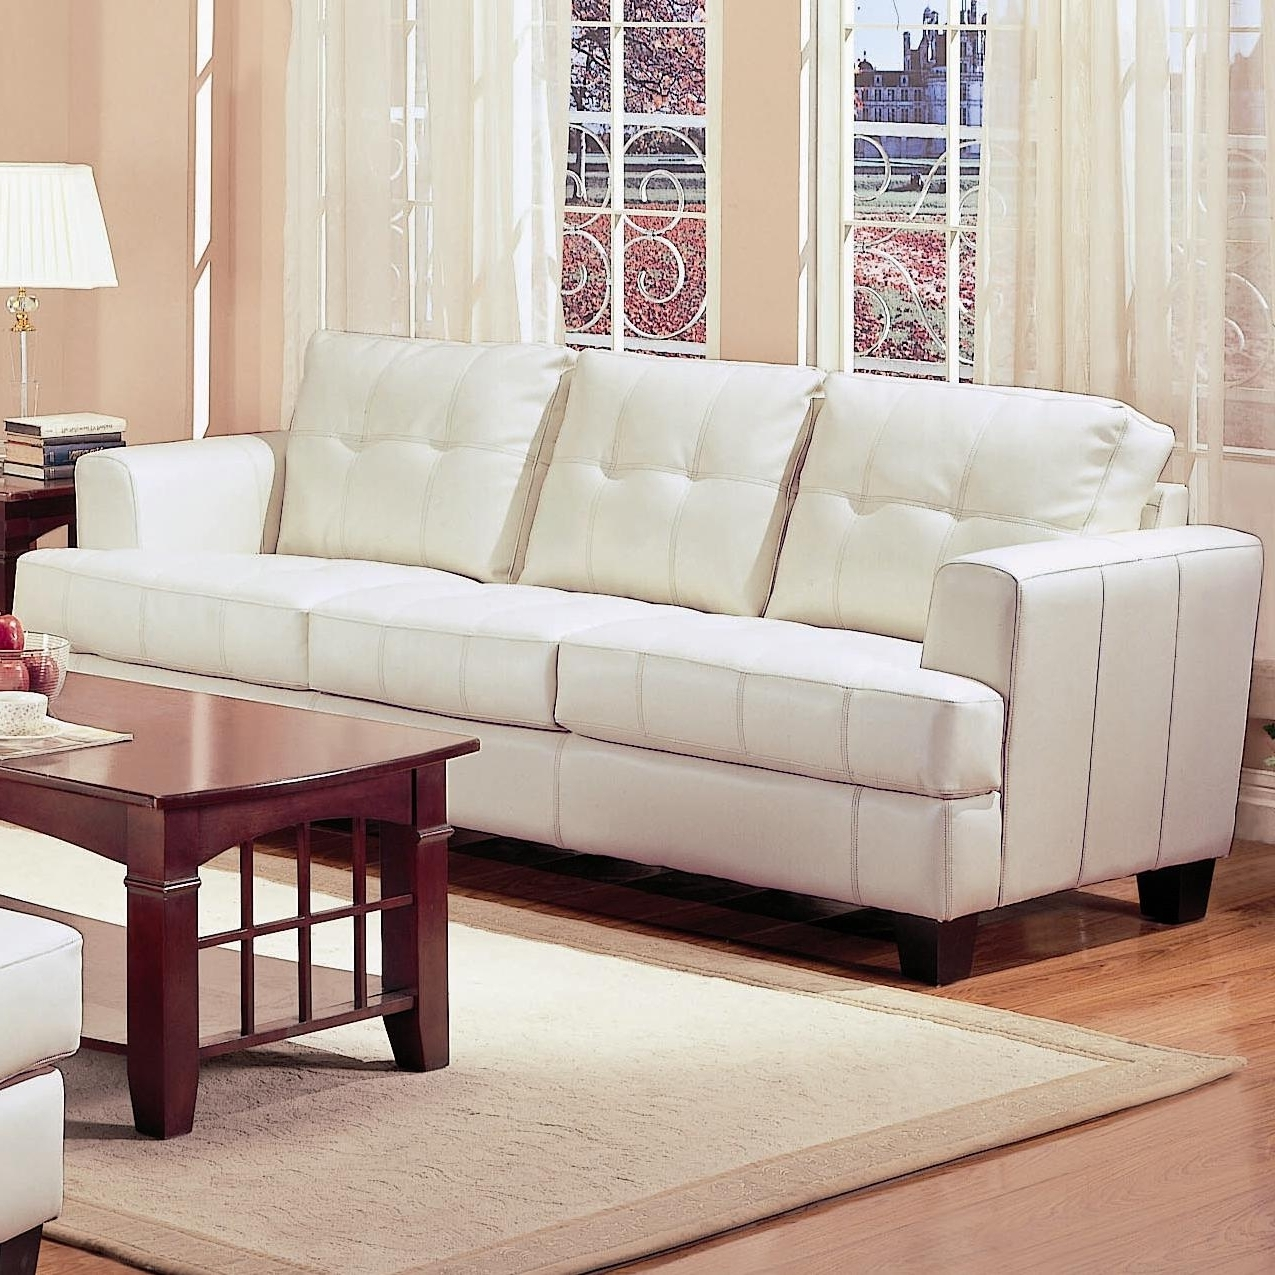 Recent Furniture: Elegant White Tufted Sofaashley Furniture Austin With Regard To Ashley Tufted Sofas (View 17 of 20)